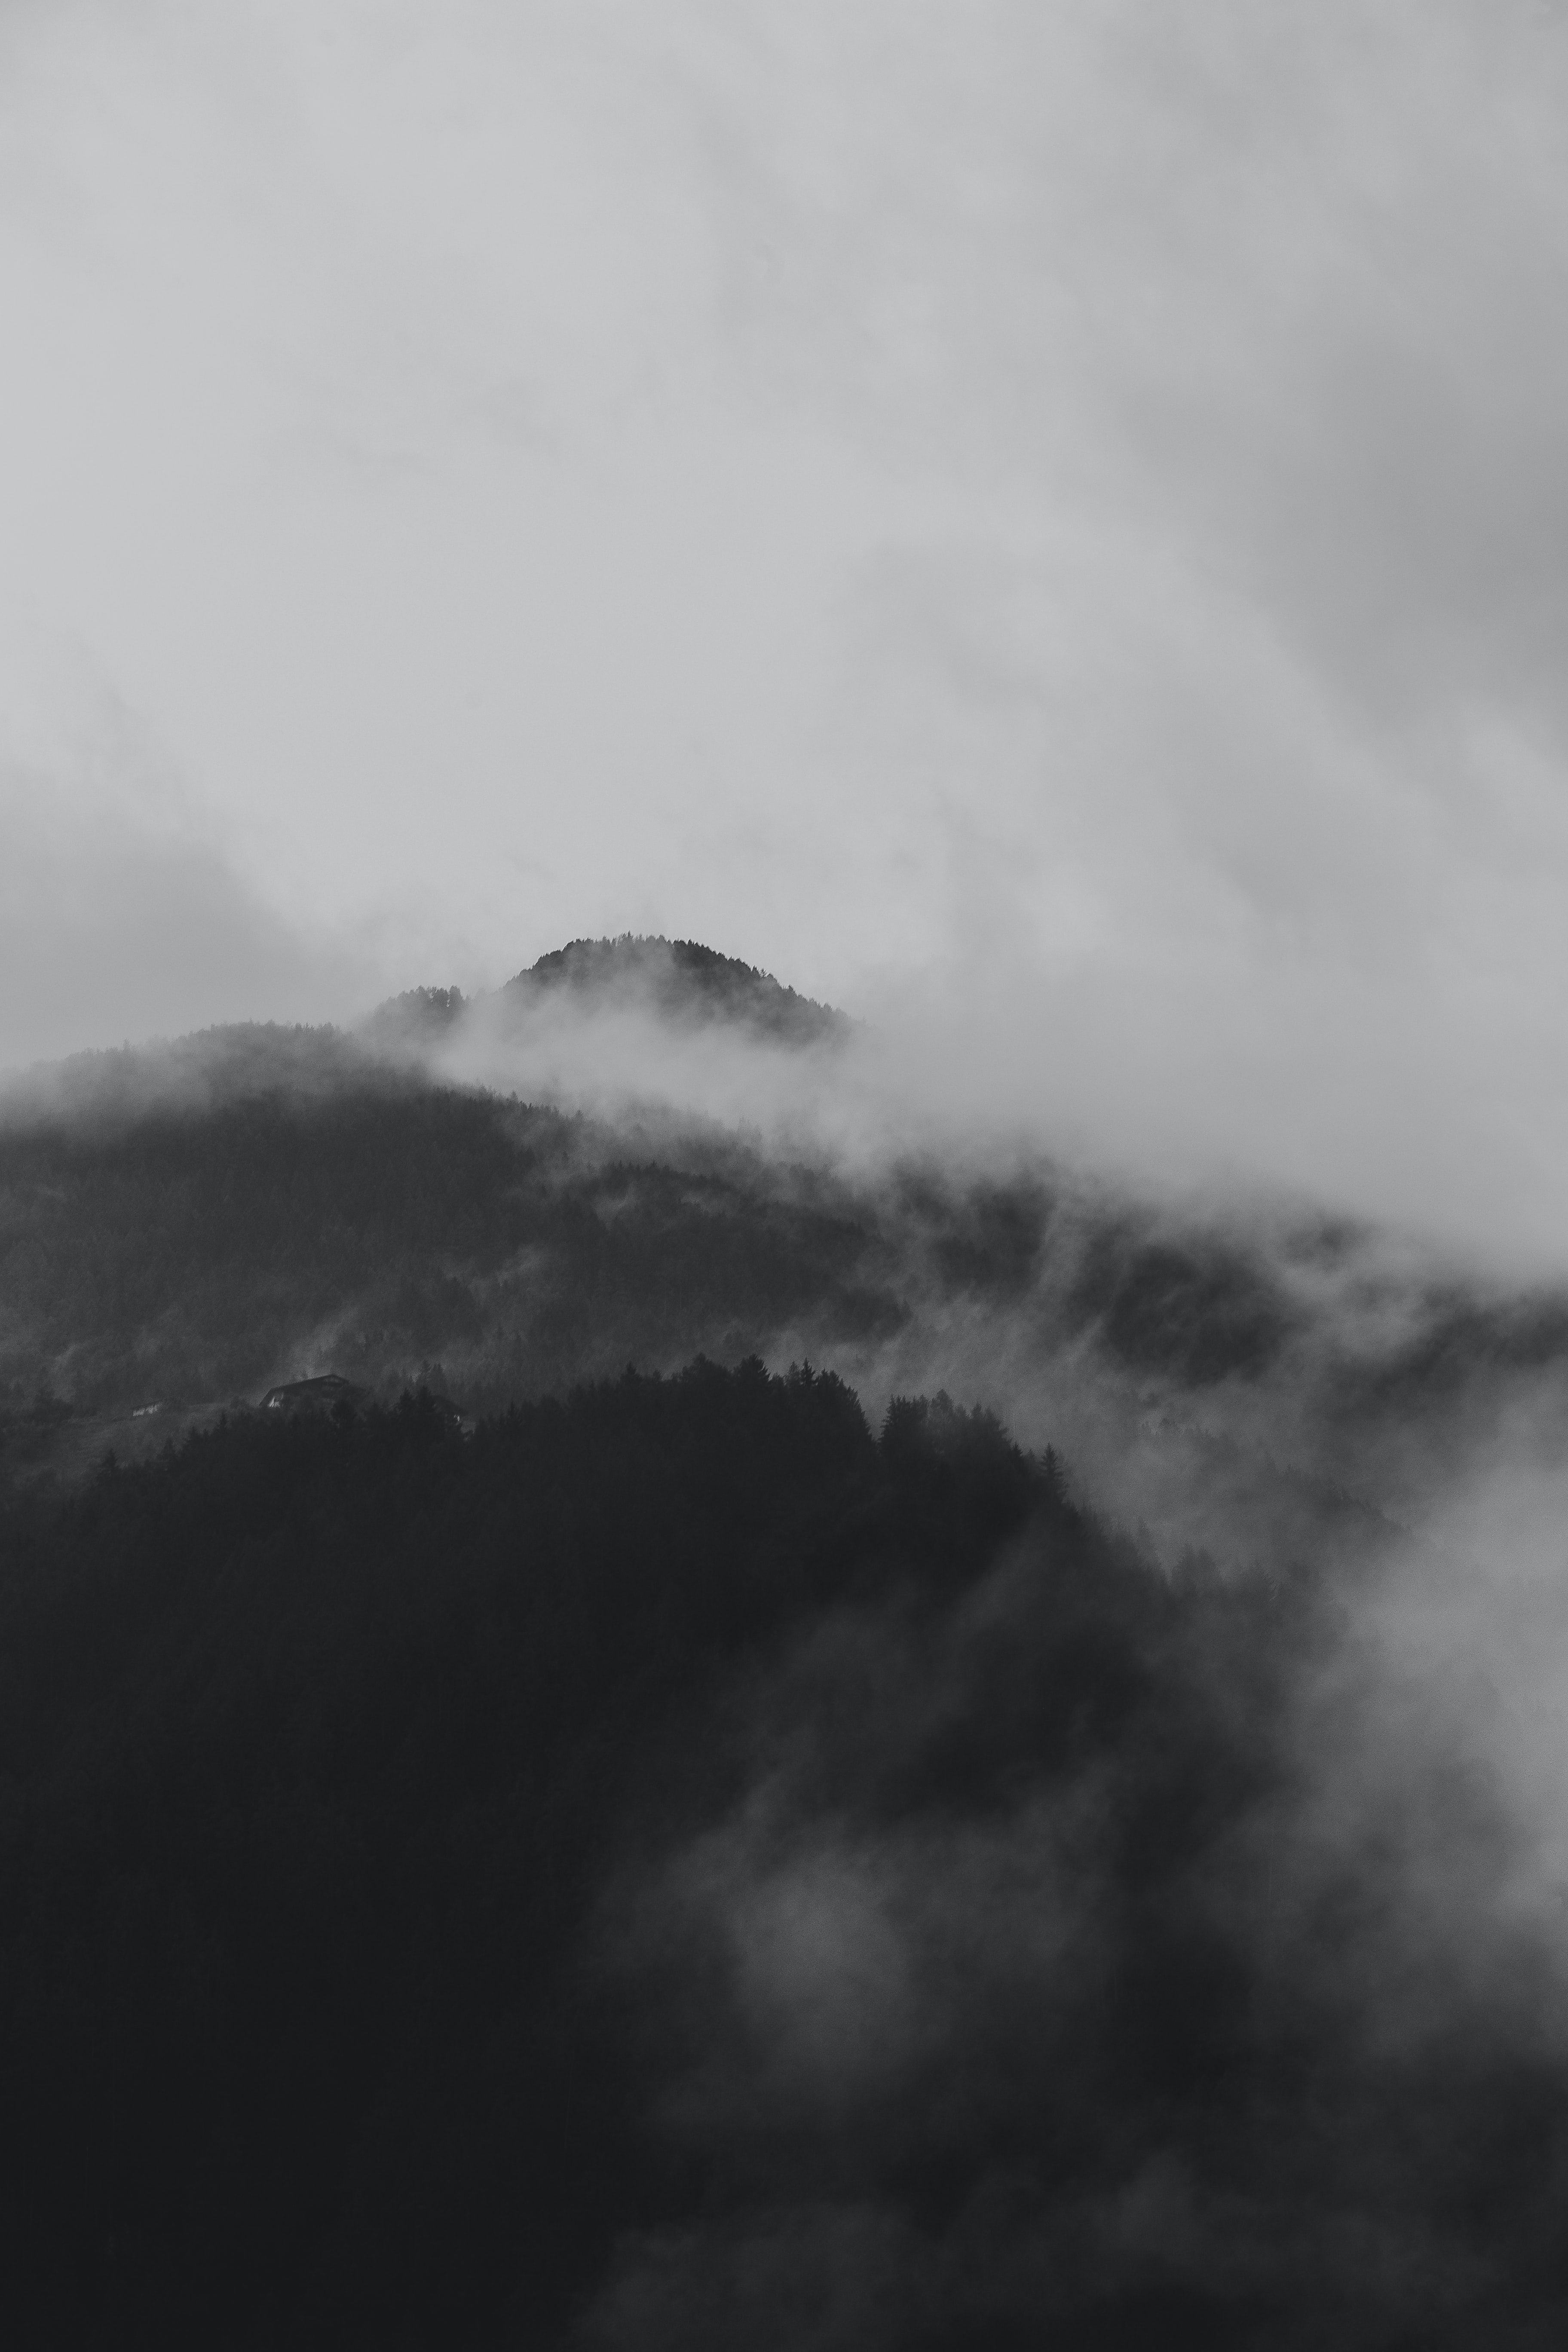 grayscale photo of mountain with clouds